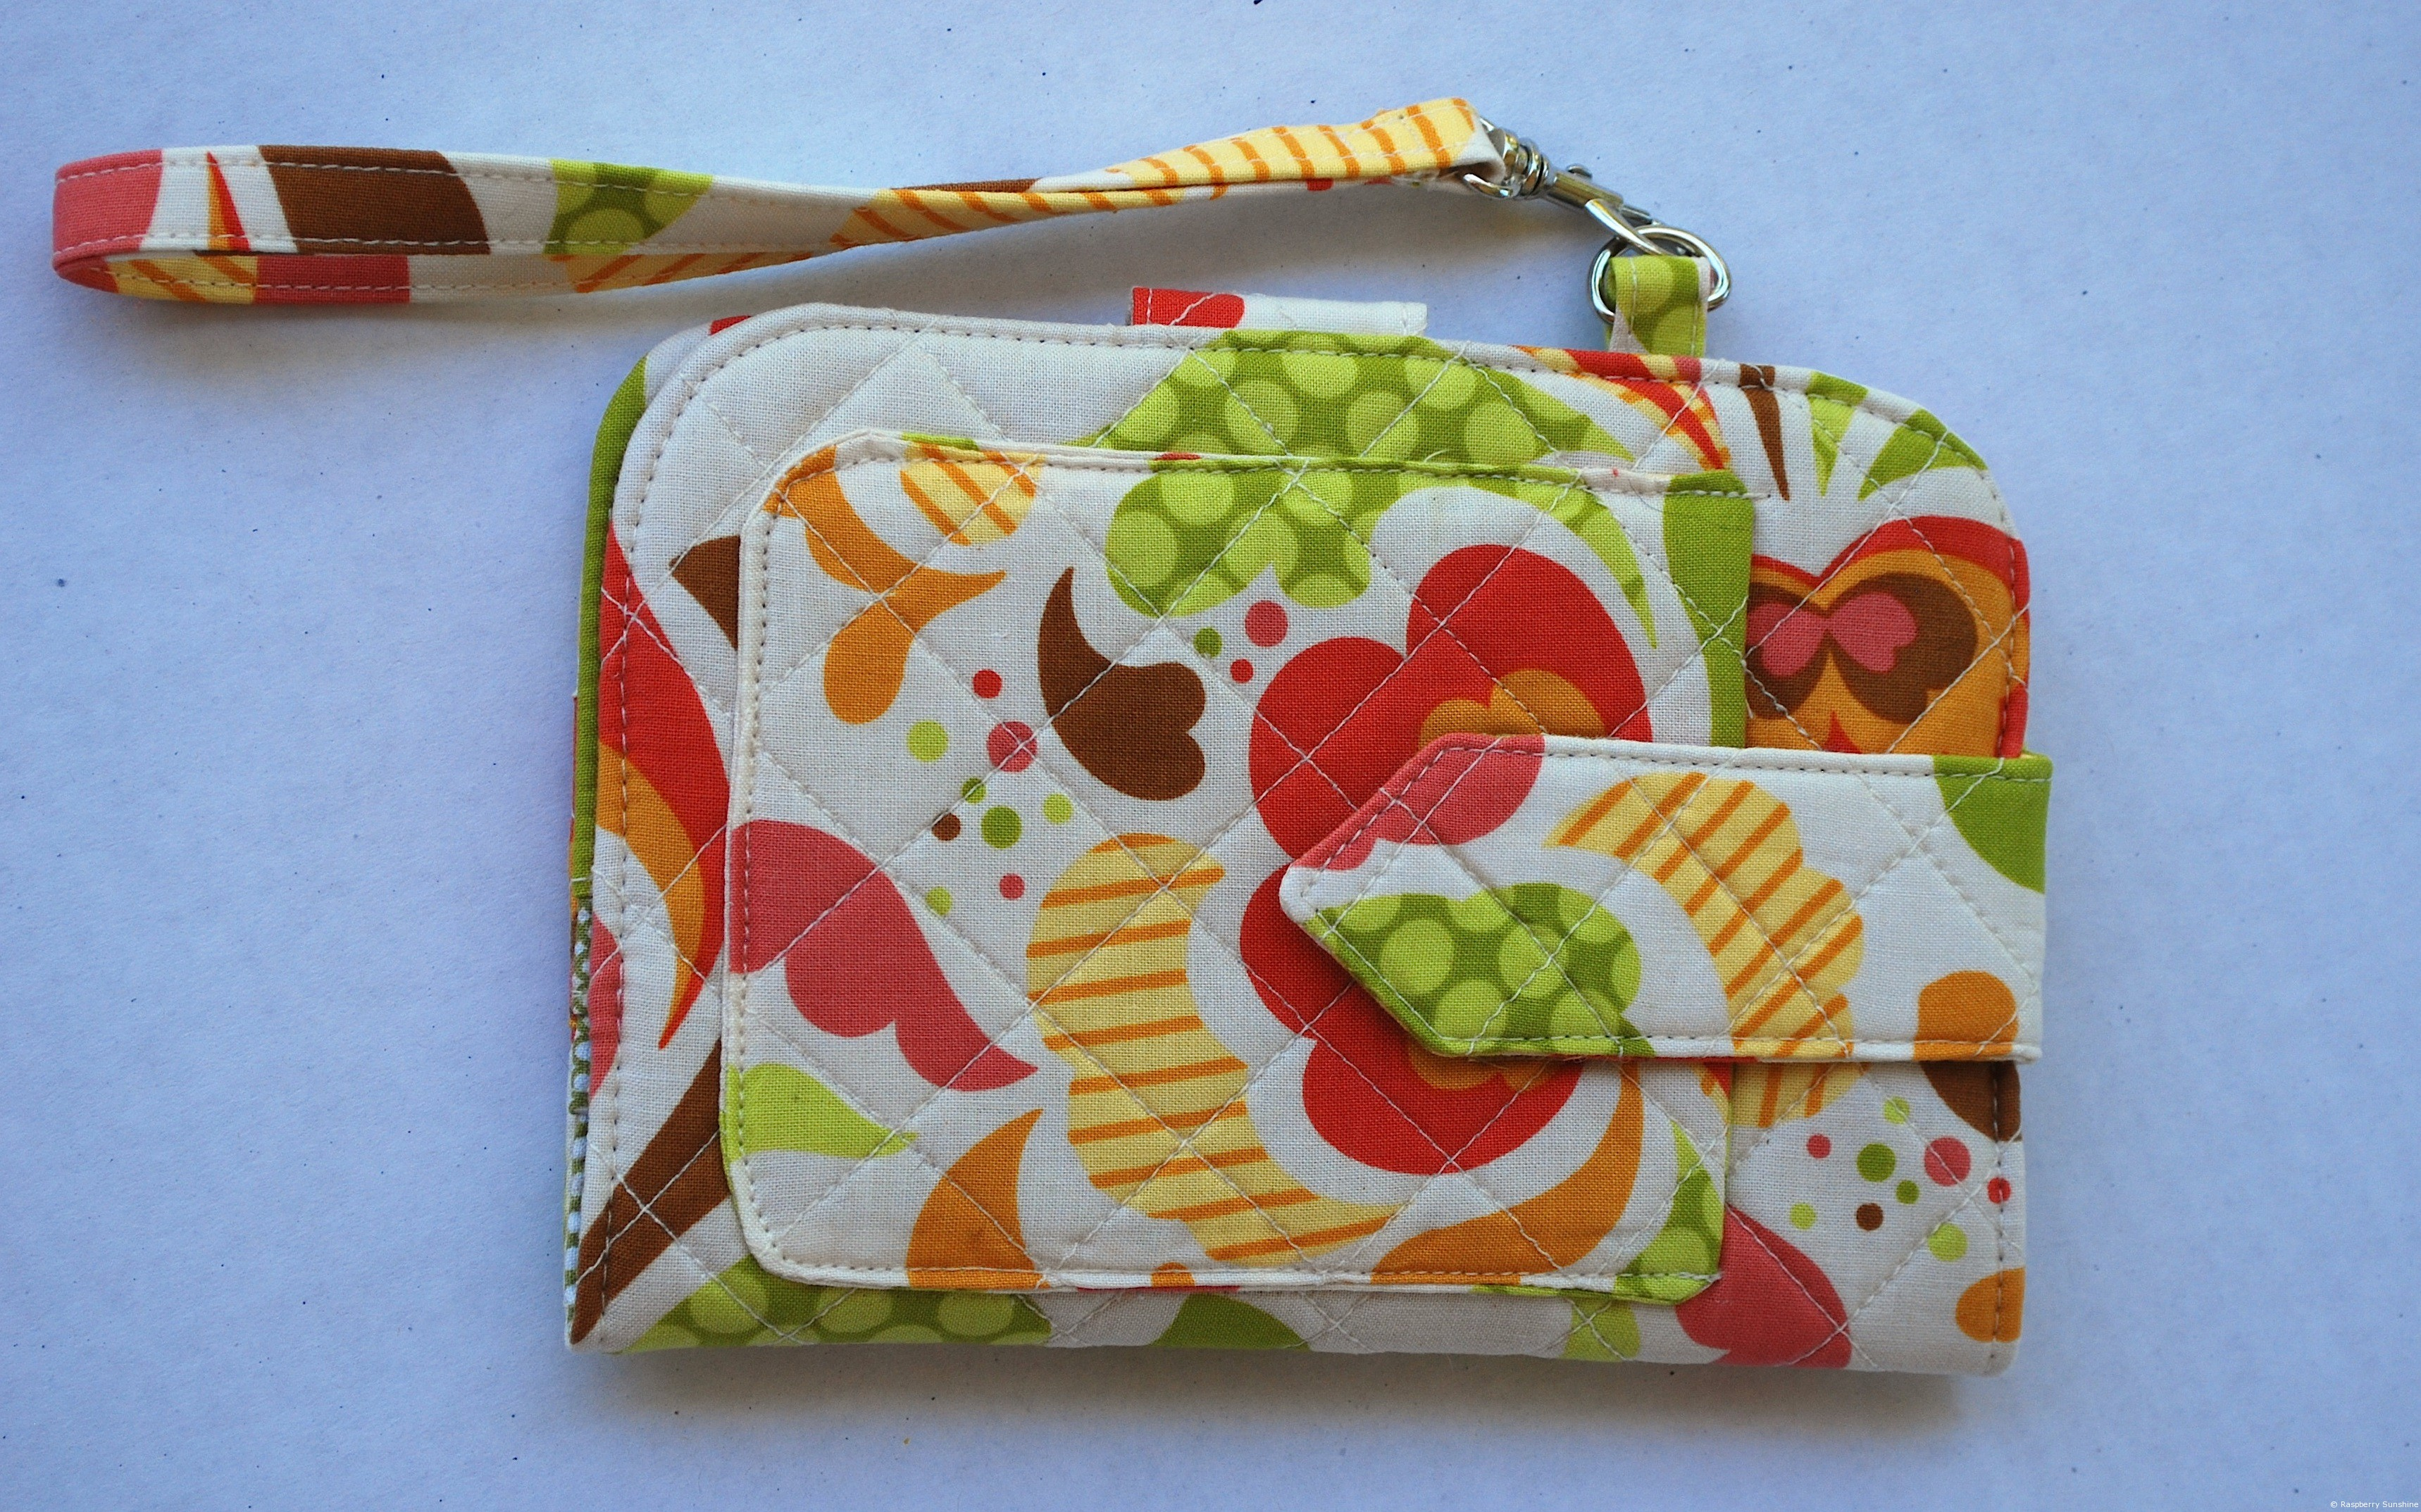 Introducing greenbacks wallet trio by sew sweetness raspberry if youre looking for a new challenge or need a new wallet give this pattern a try you wont be disappointed i am getting ready to get more of this jeuxipadfo Choice Image